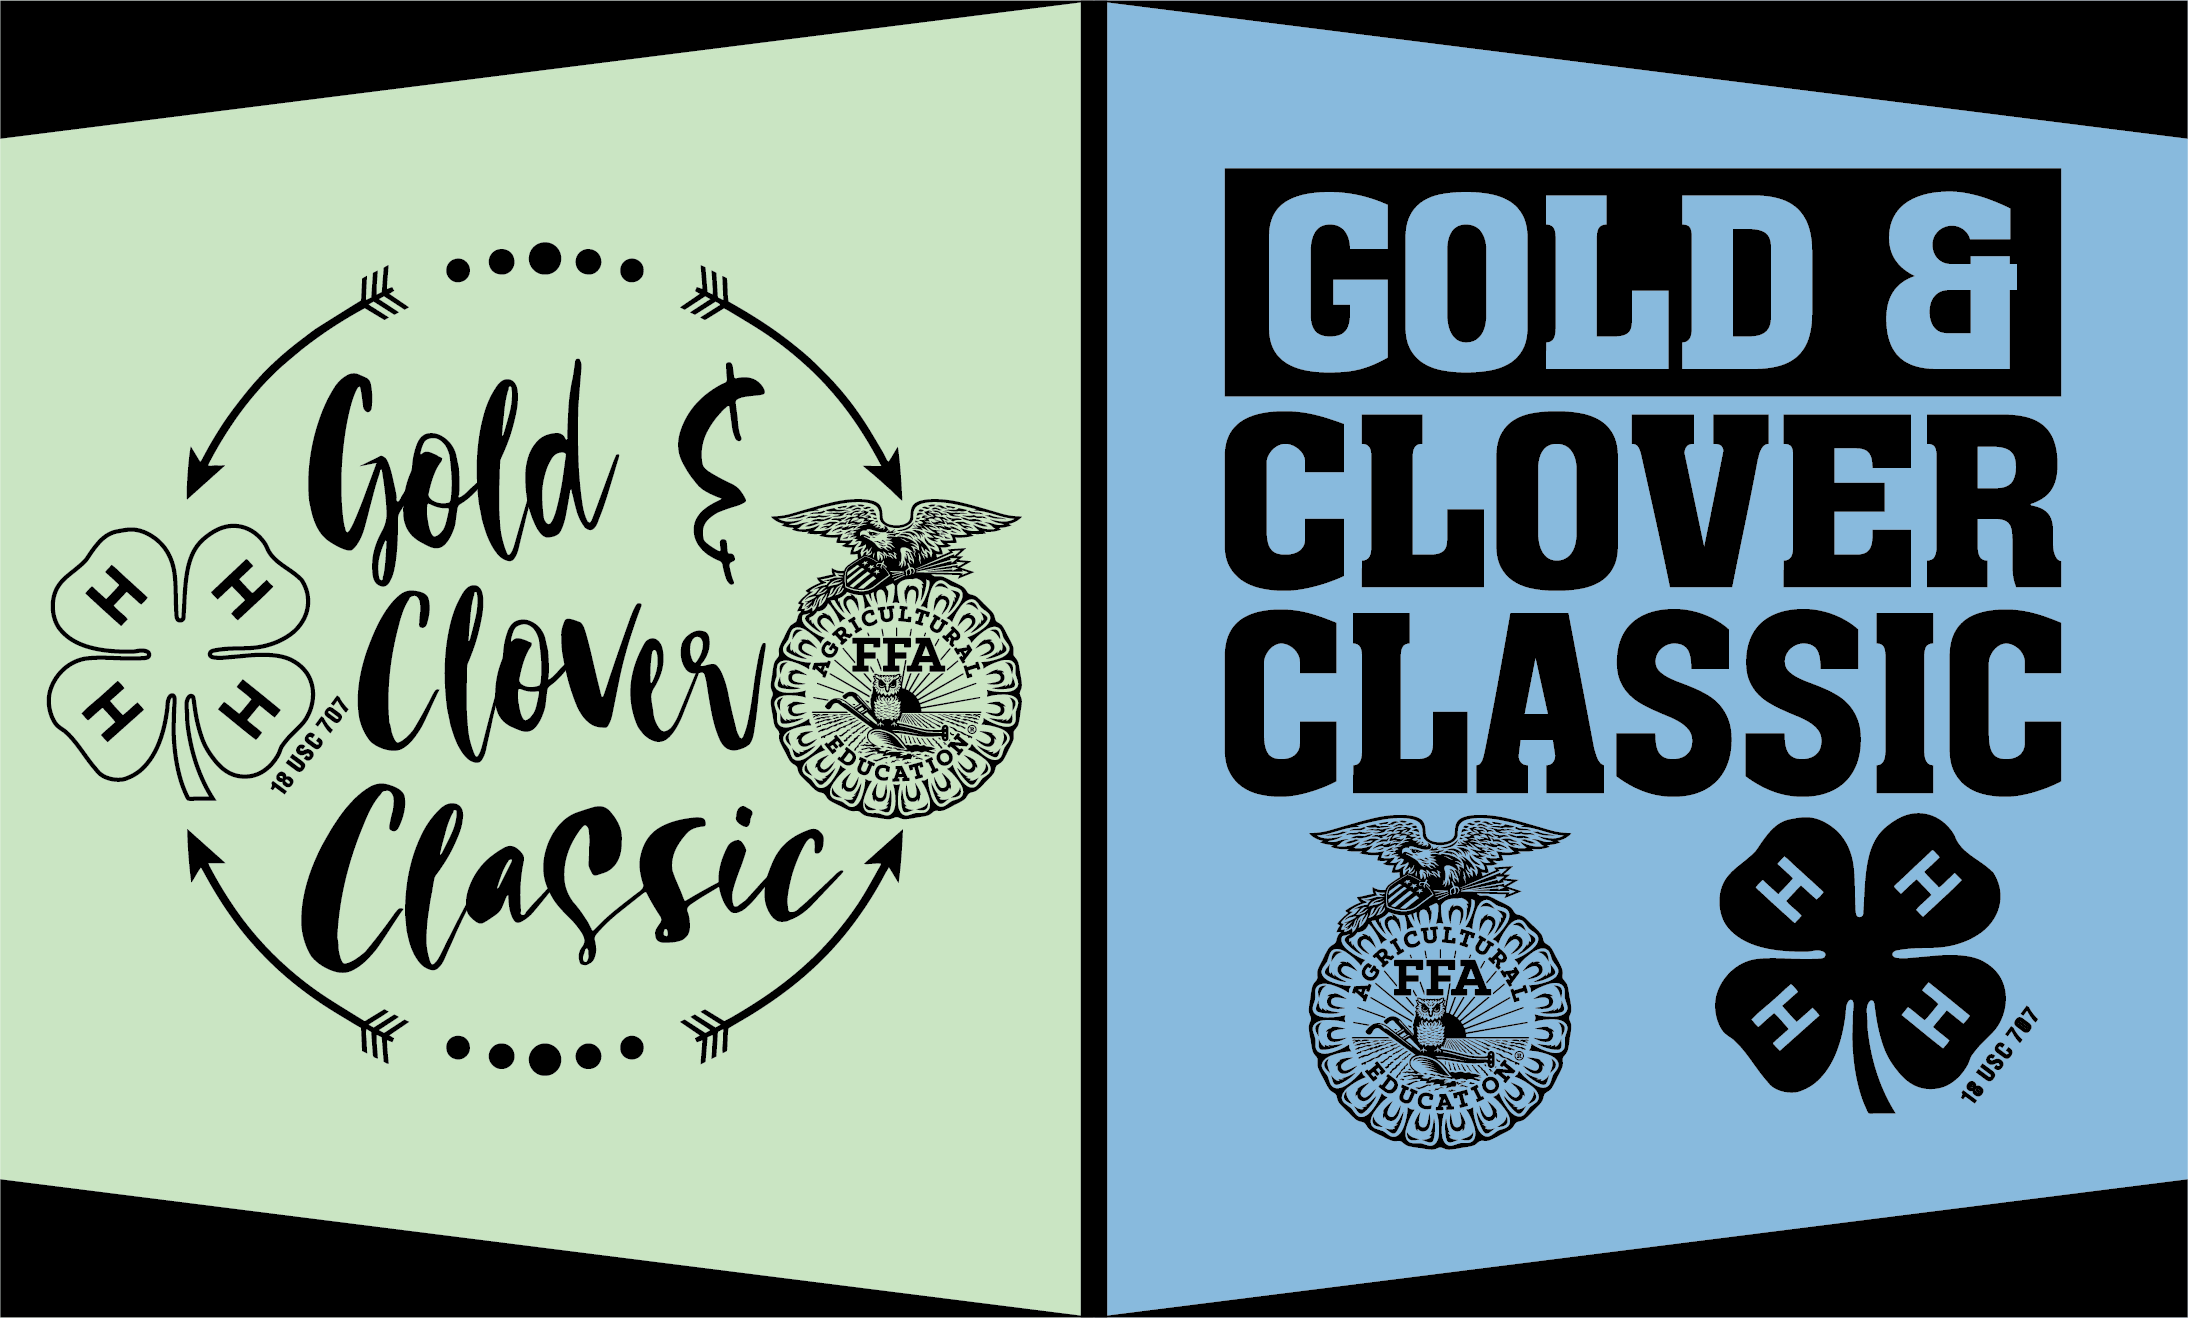 Plymouth County Gold & Clover Classic